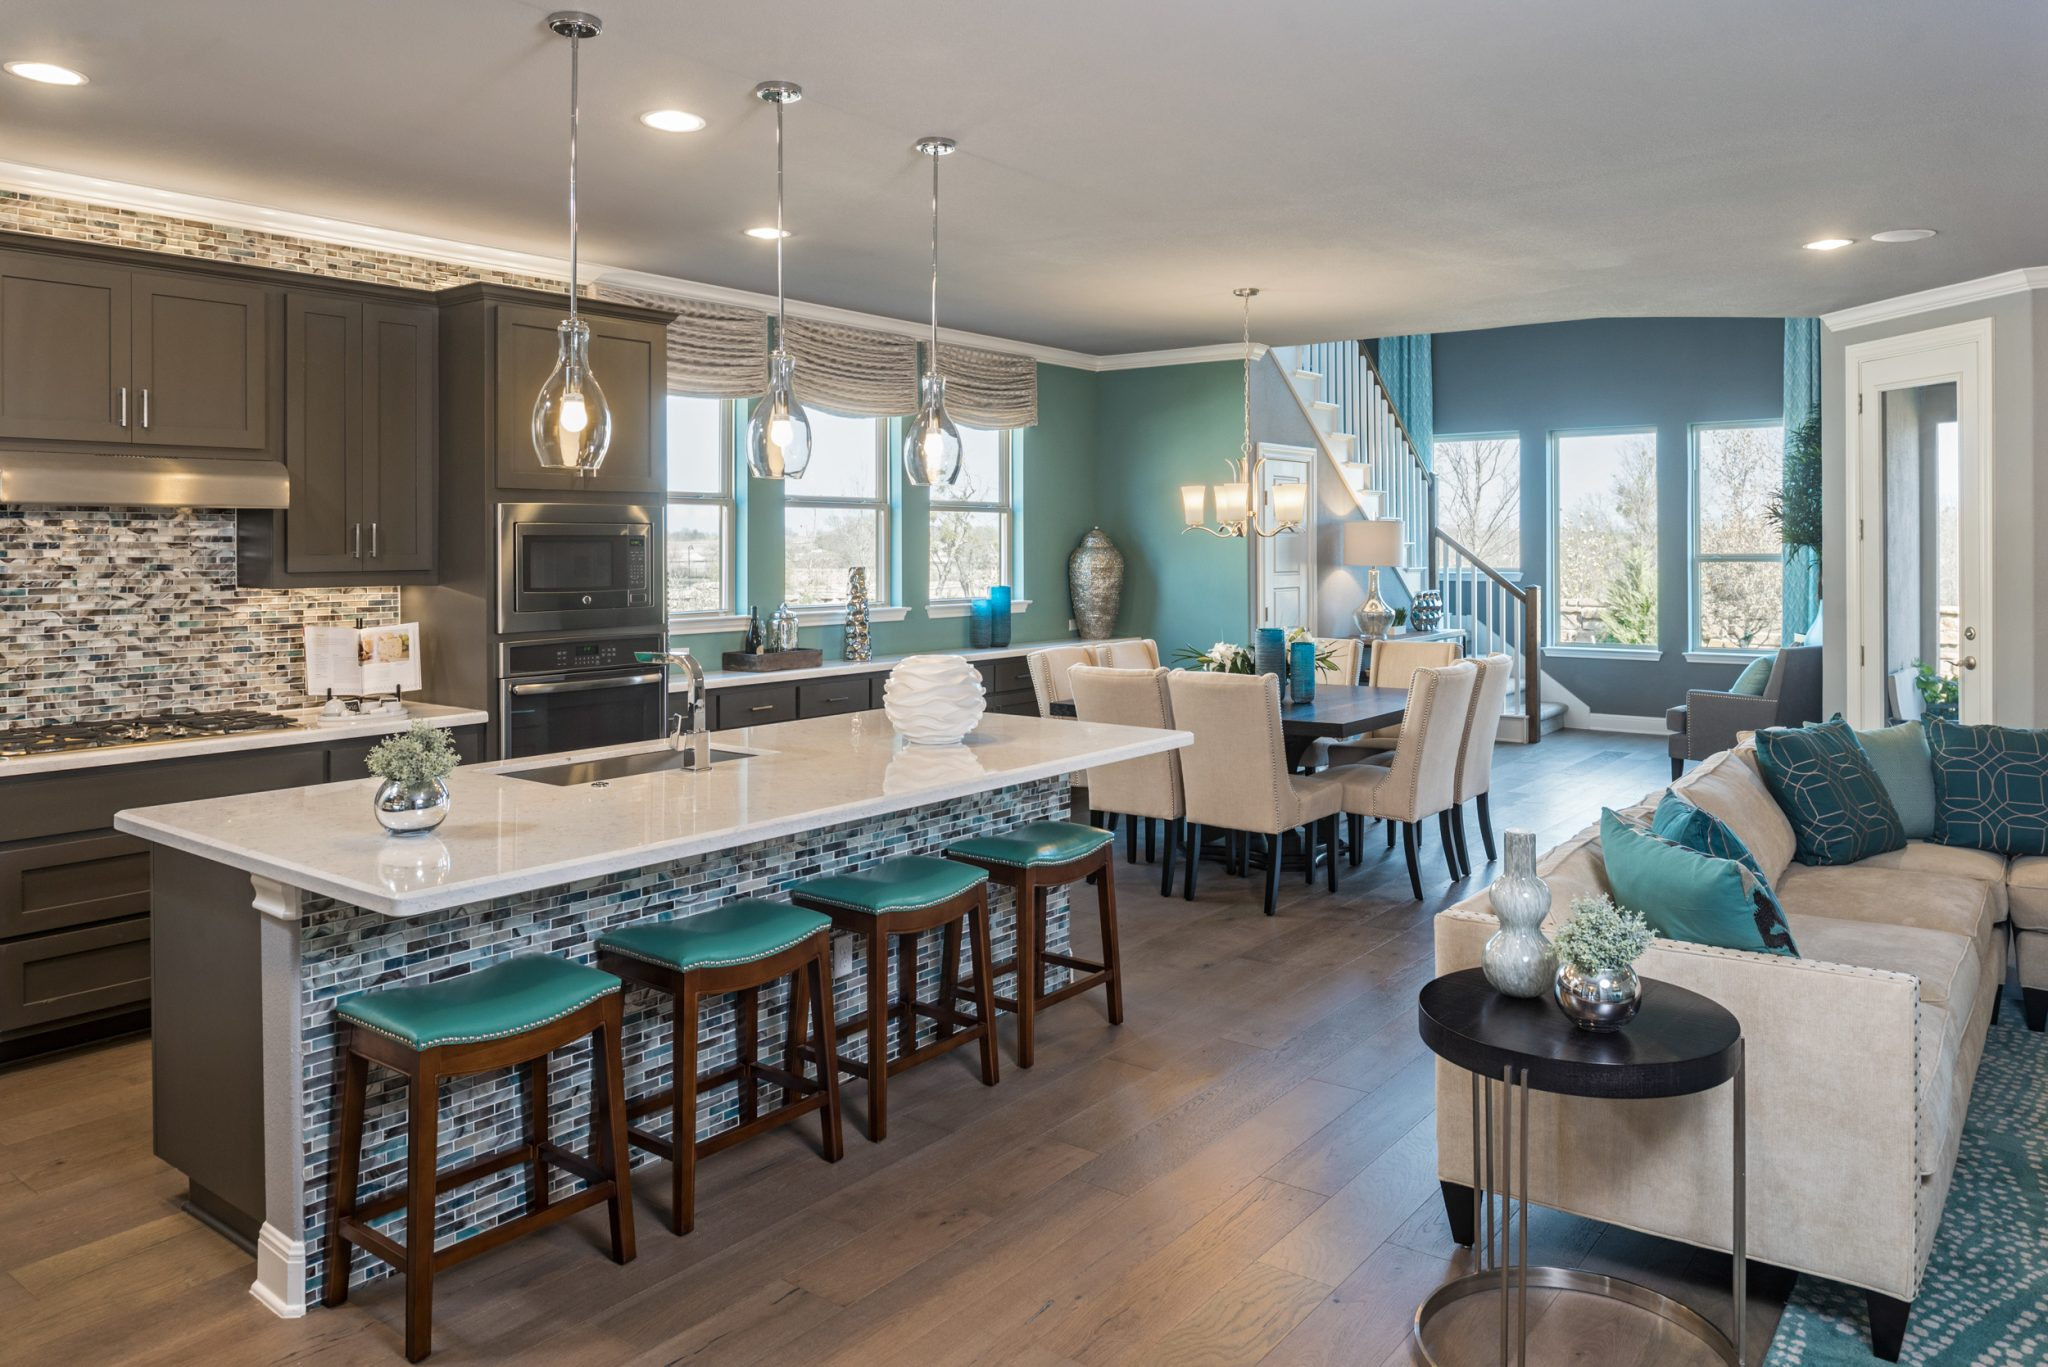 Taylor Morrison Debuts 21 All New Floor Plans At Vizcaya